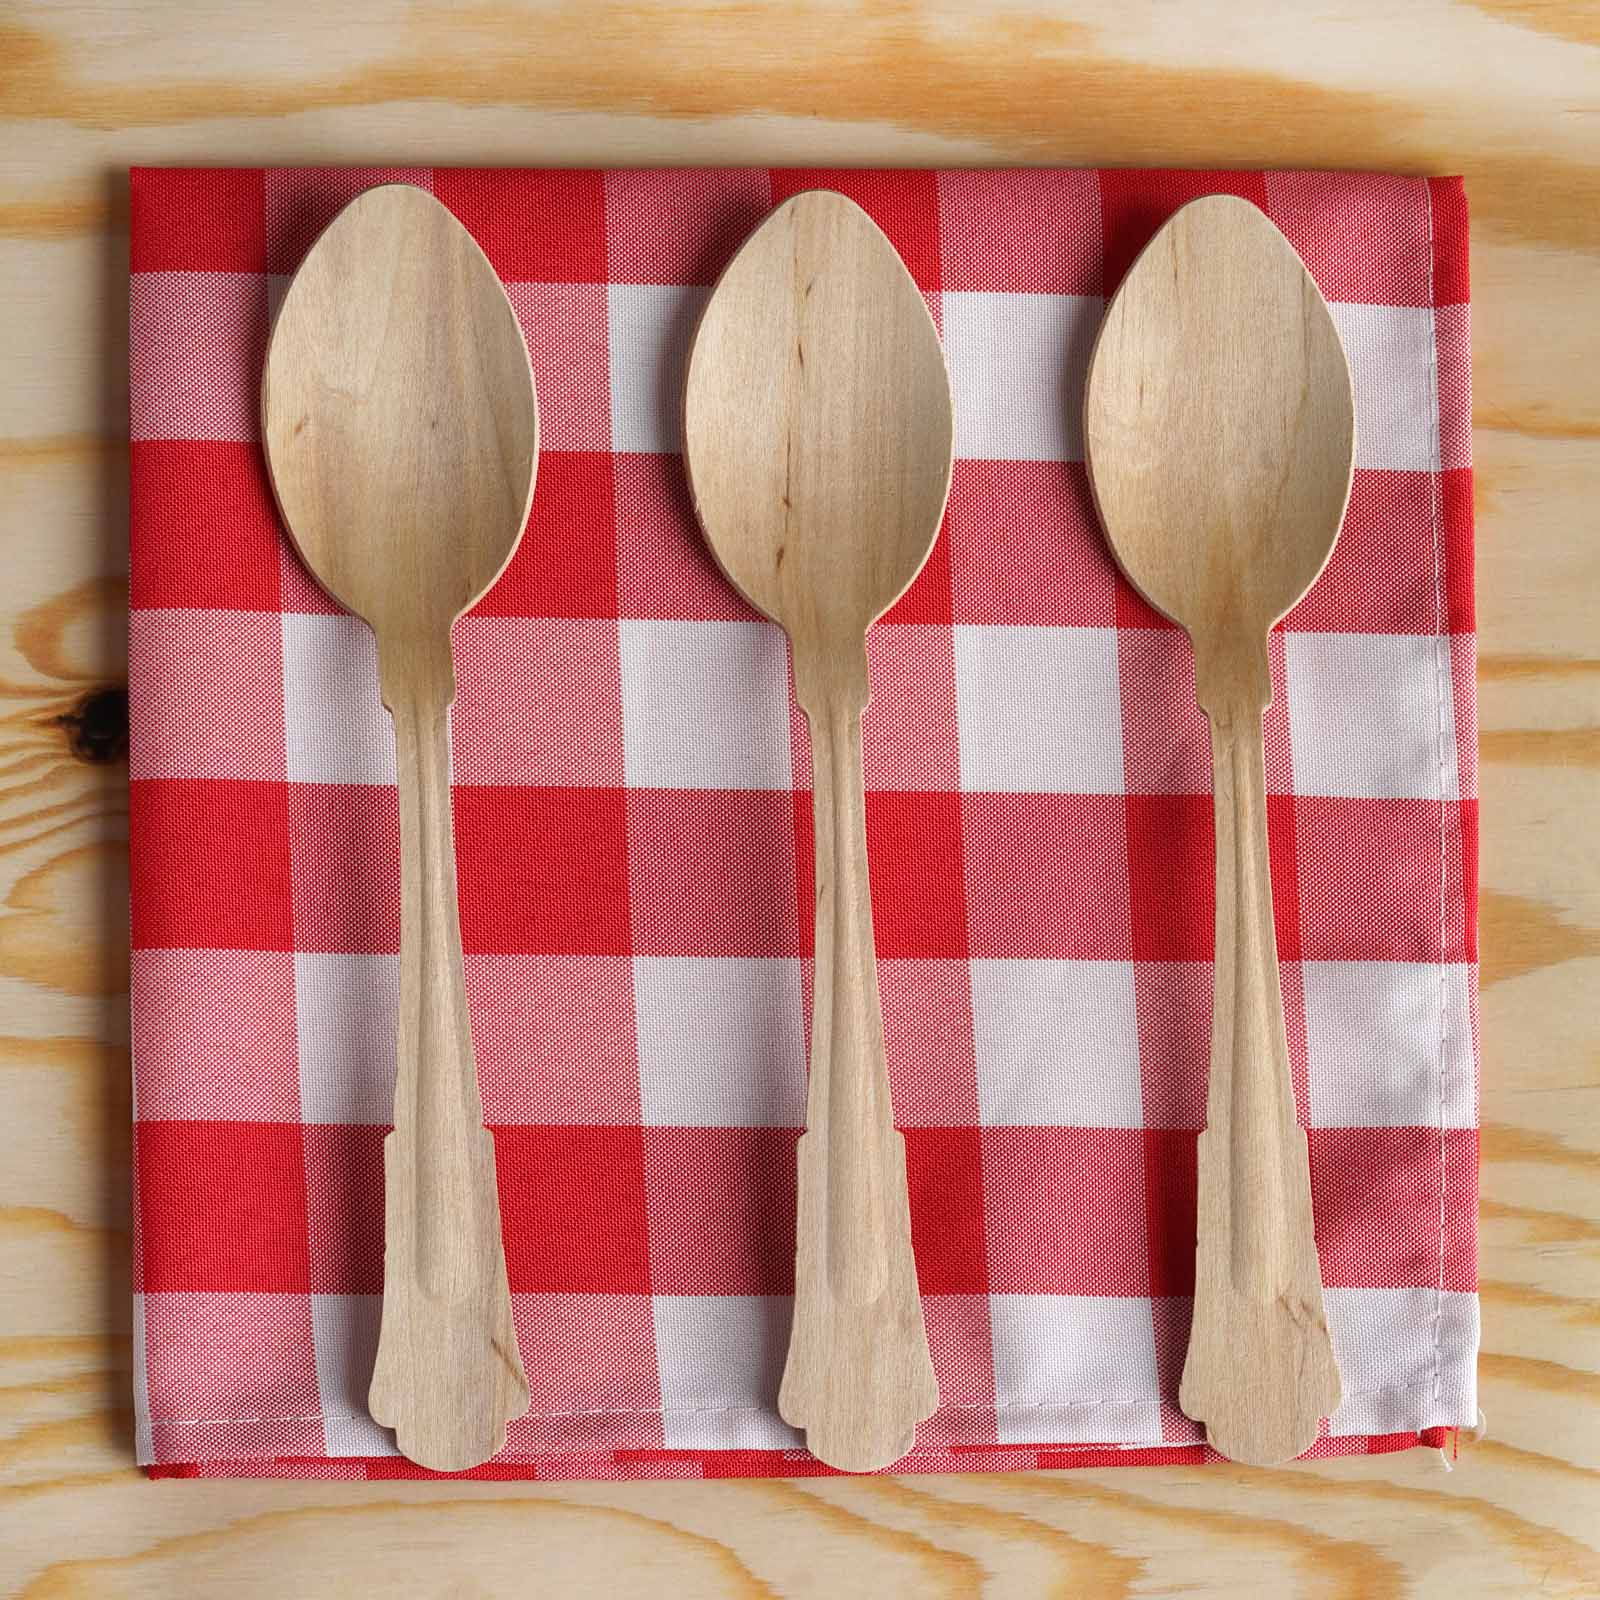 eco-friendly wooden cutlery for zero waste entertaining